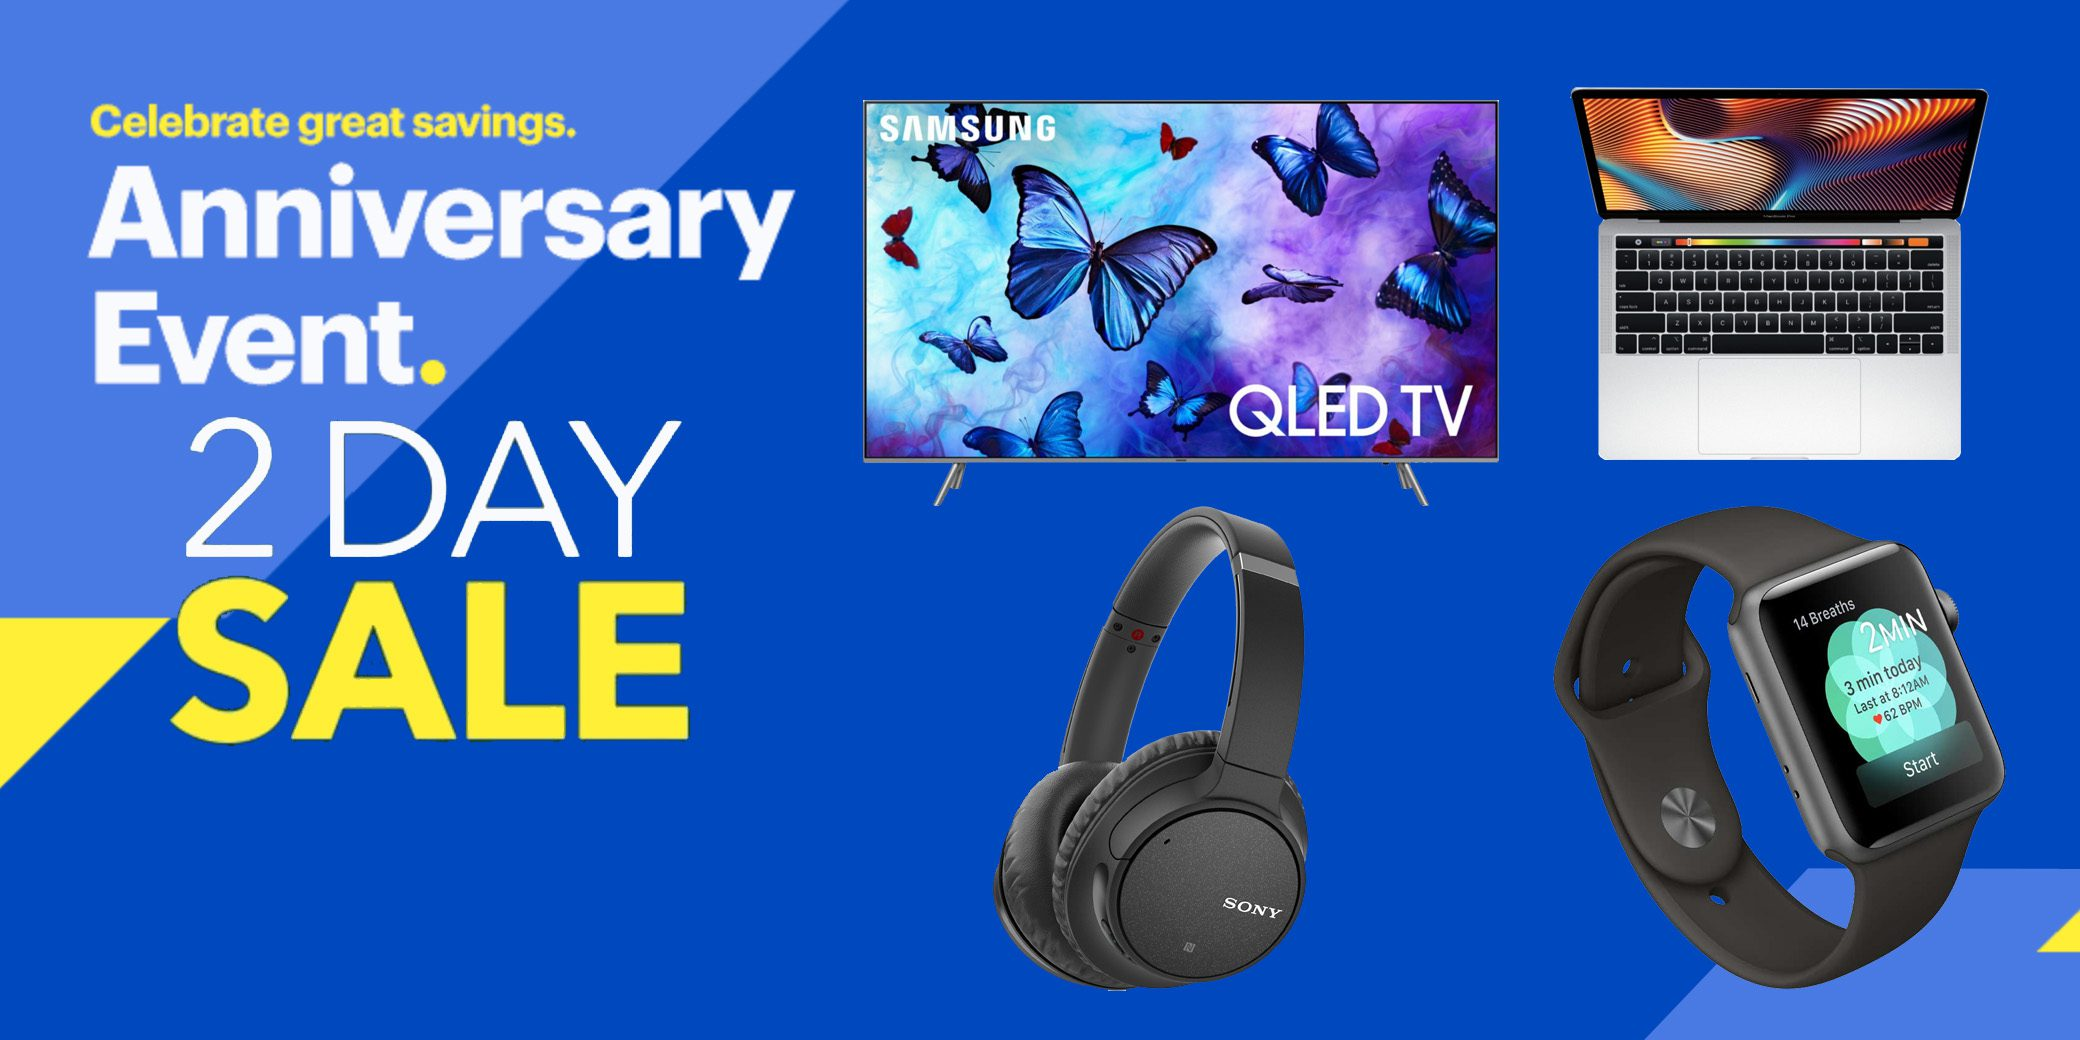 9to5toys last call best buy anniversary sale essential phone 128gb best fandeluxe Choice Image